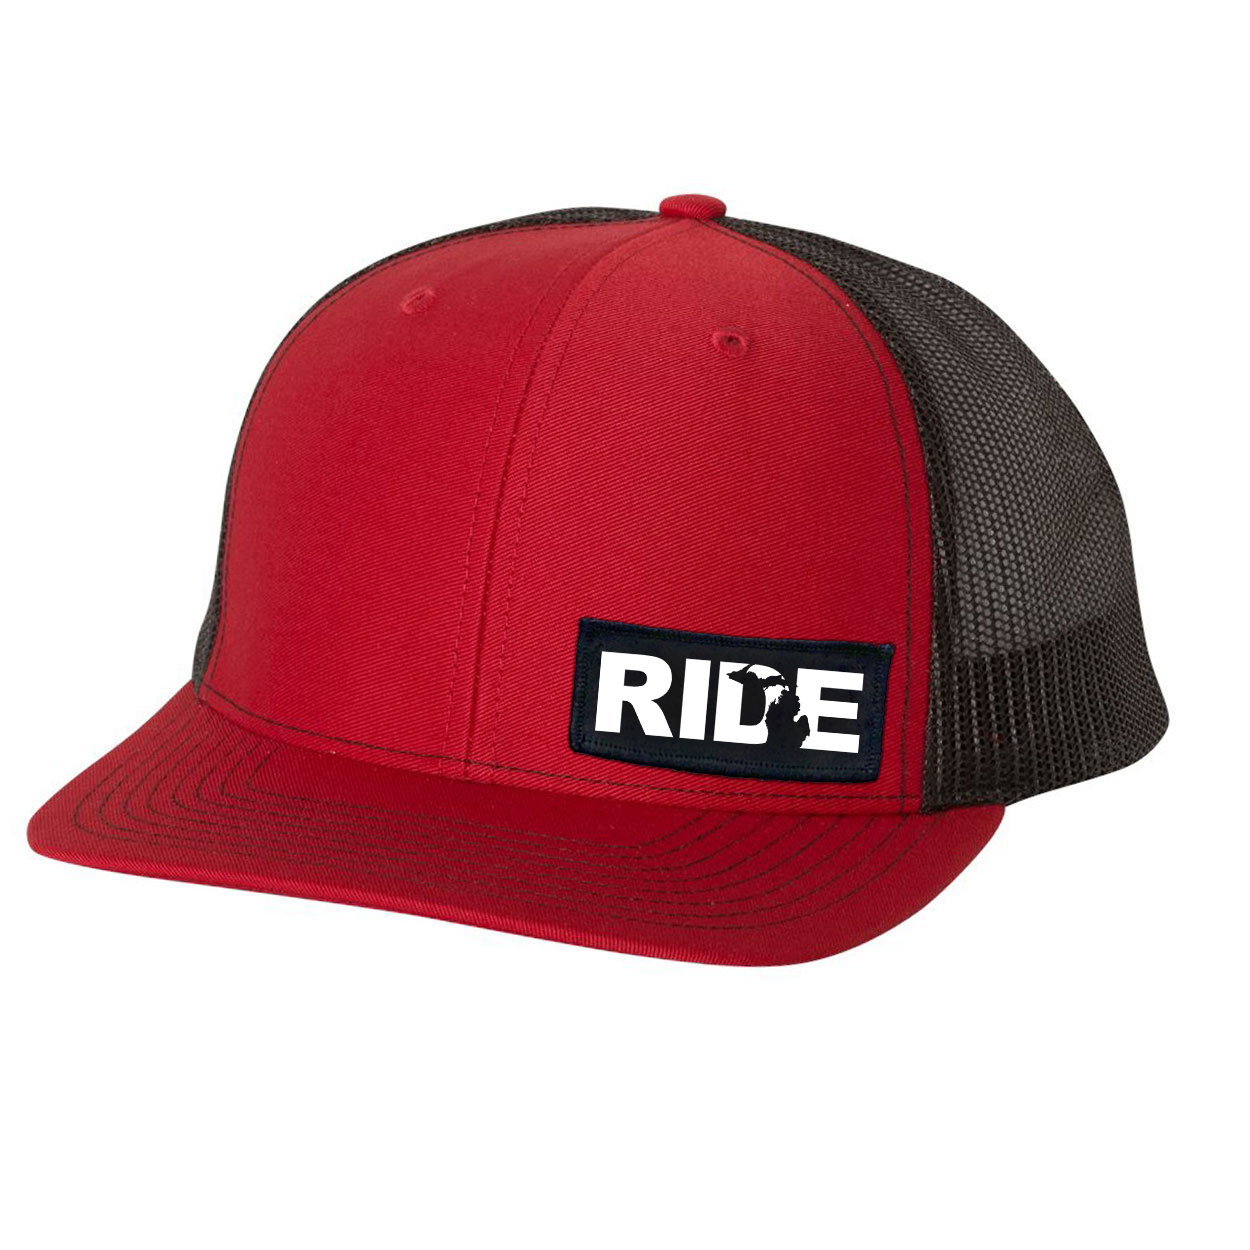 Ride Michigan Night Out Woven Patch Snapback Trucker Hat Red/Black (White Logo)